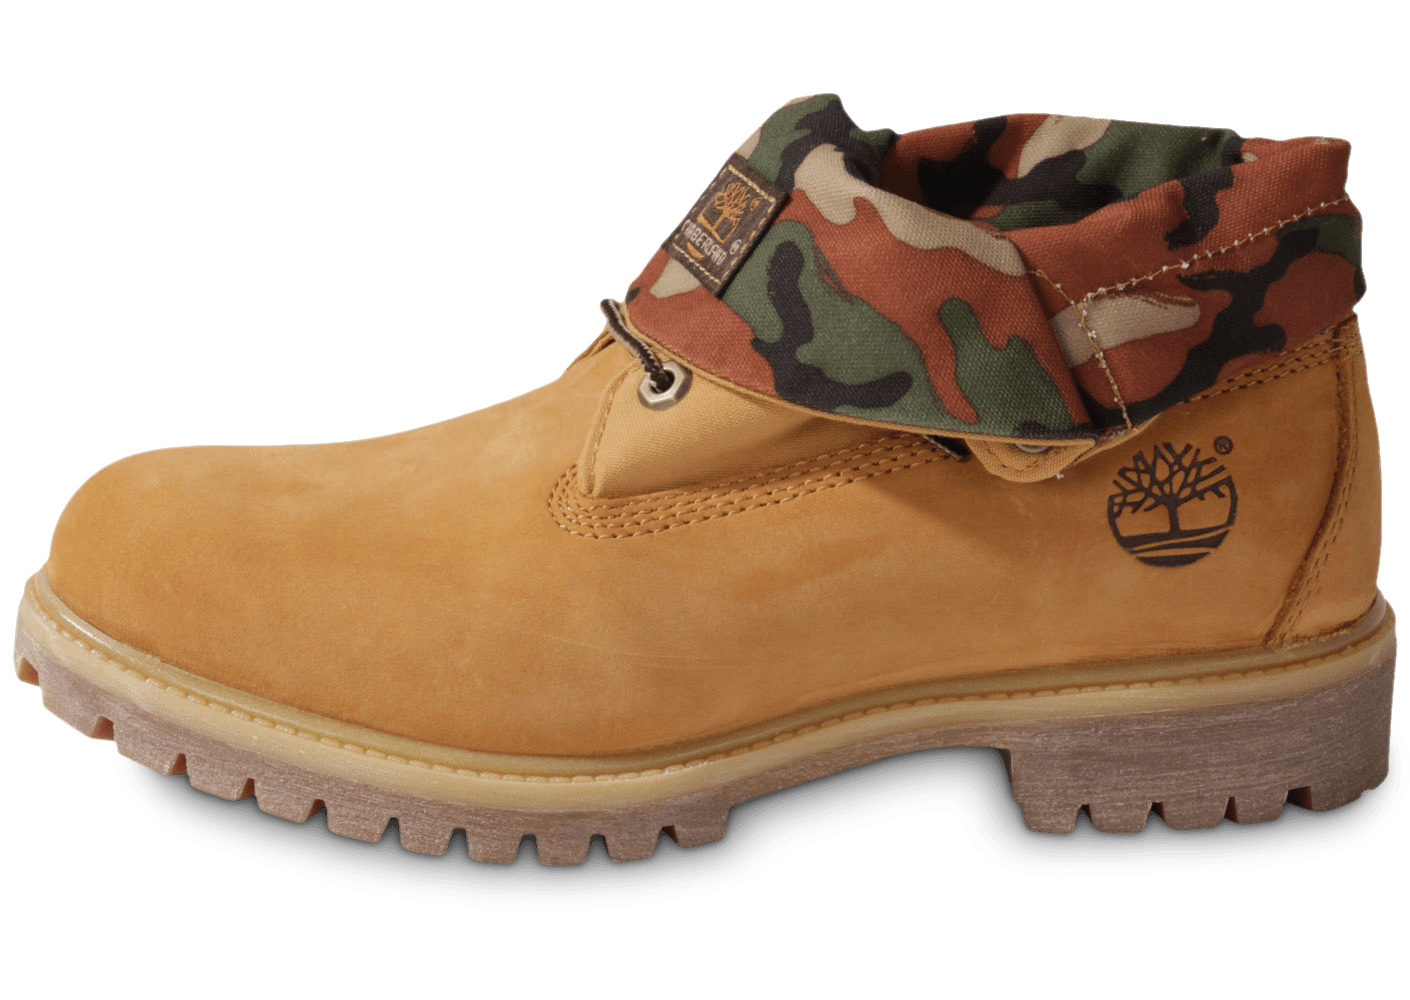 Timberland 6 Inch Icon Roll Top Camo Beige Chaussures Baskets Rjxaazqi-150330-2106525 Vente